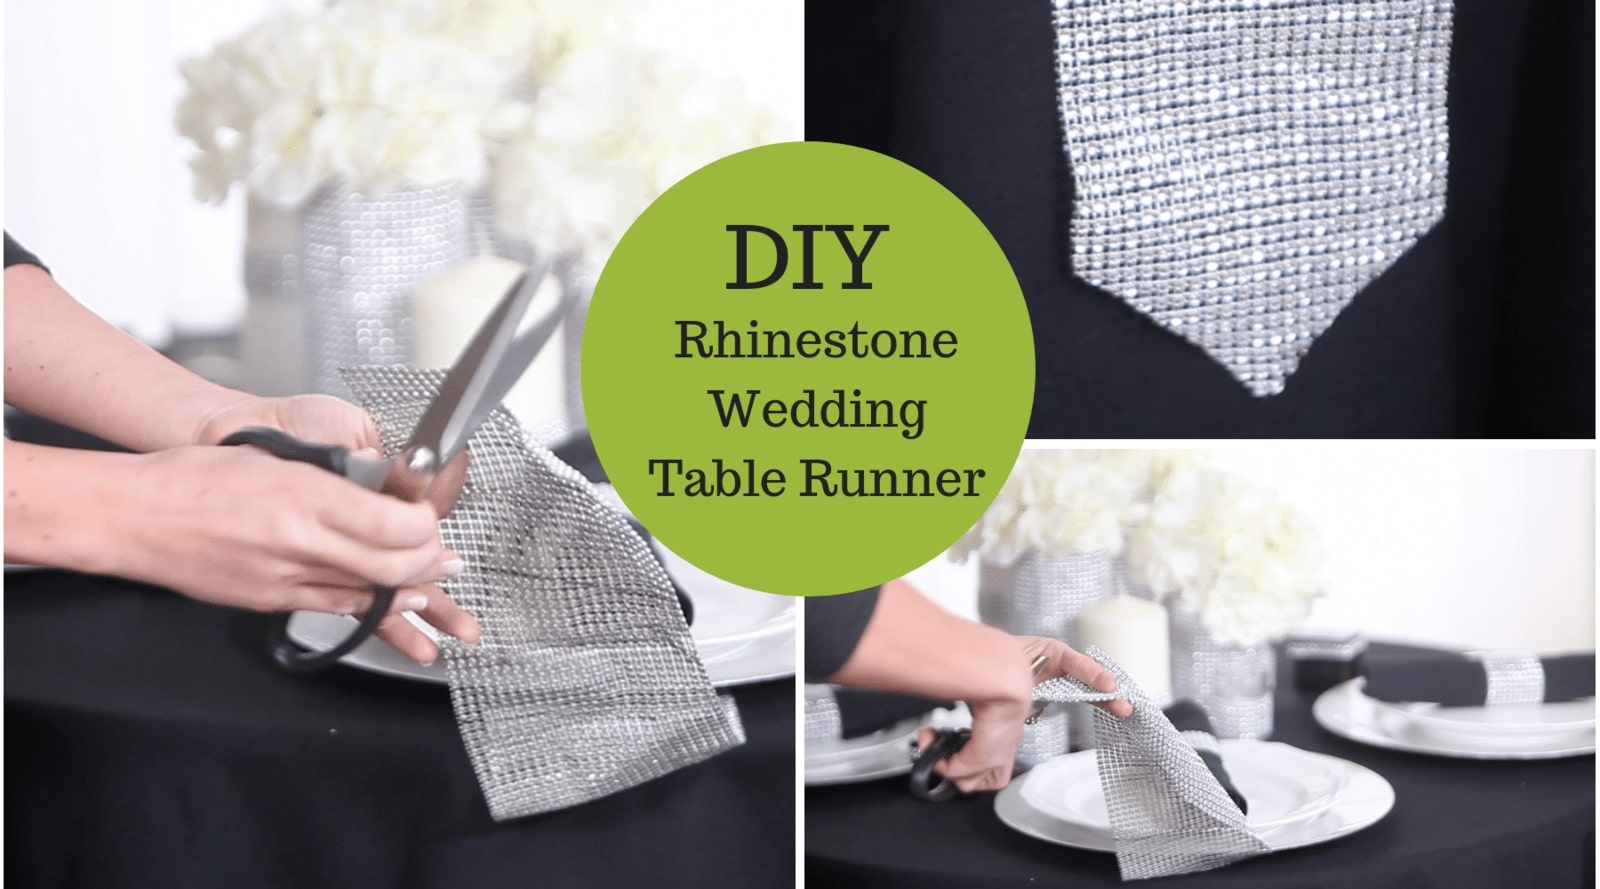 DIY Rhinestone Table Runner – Our Easiest One Yet